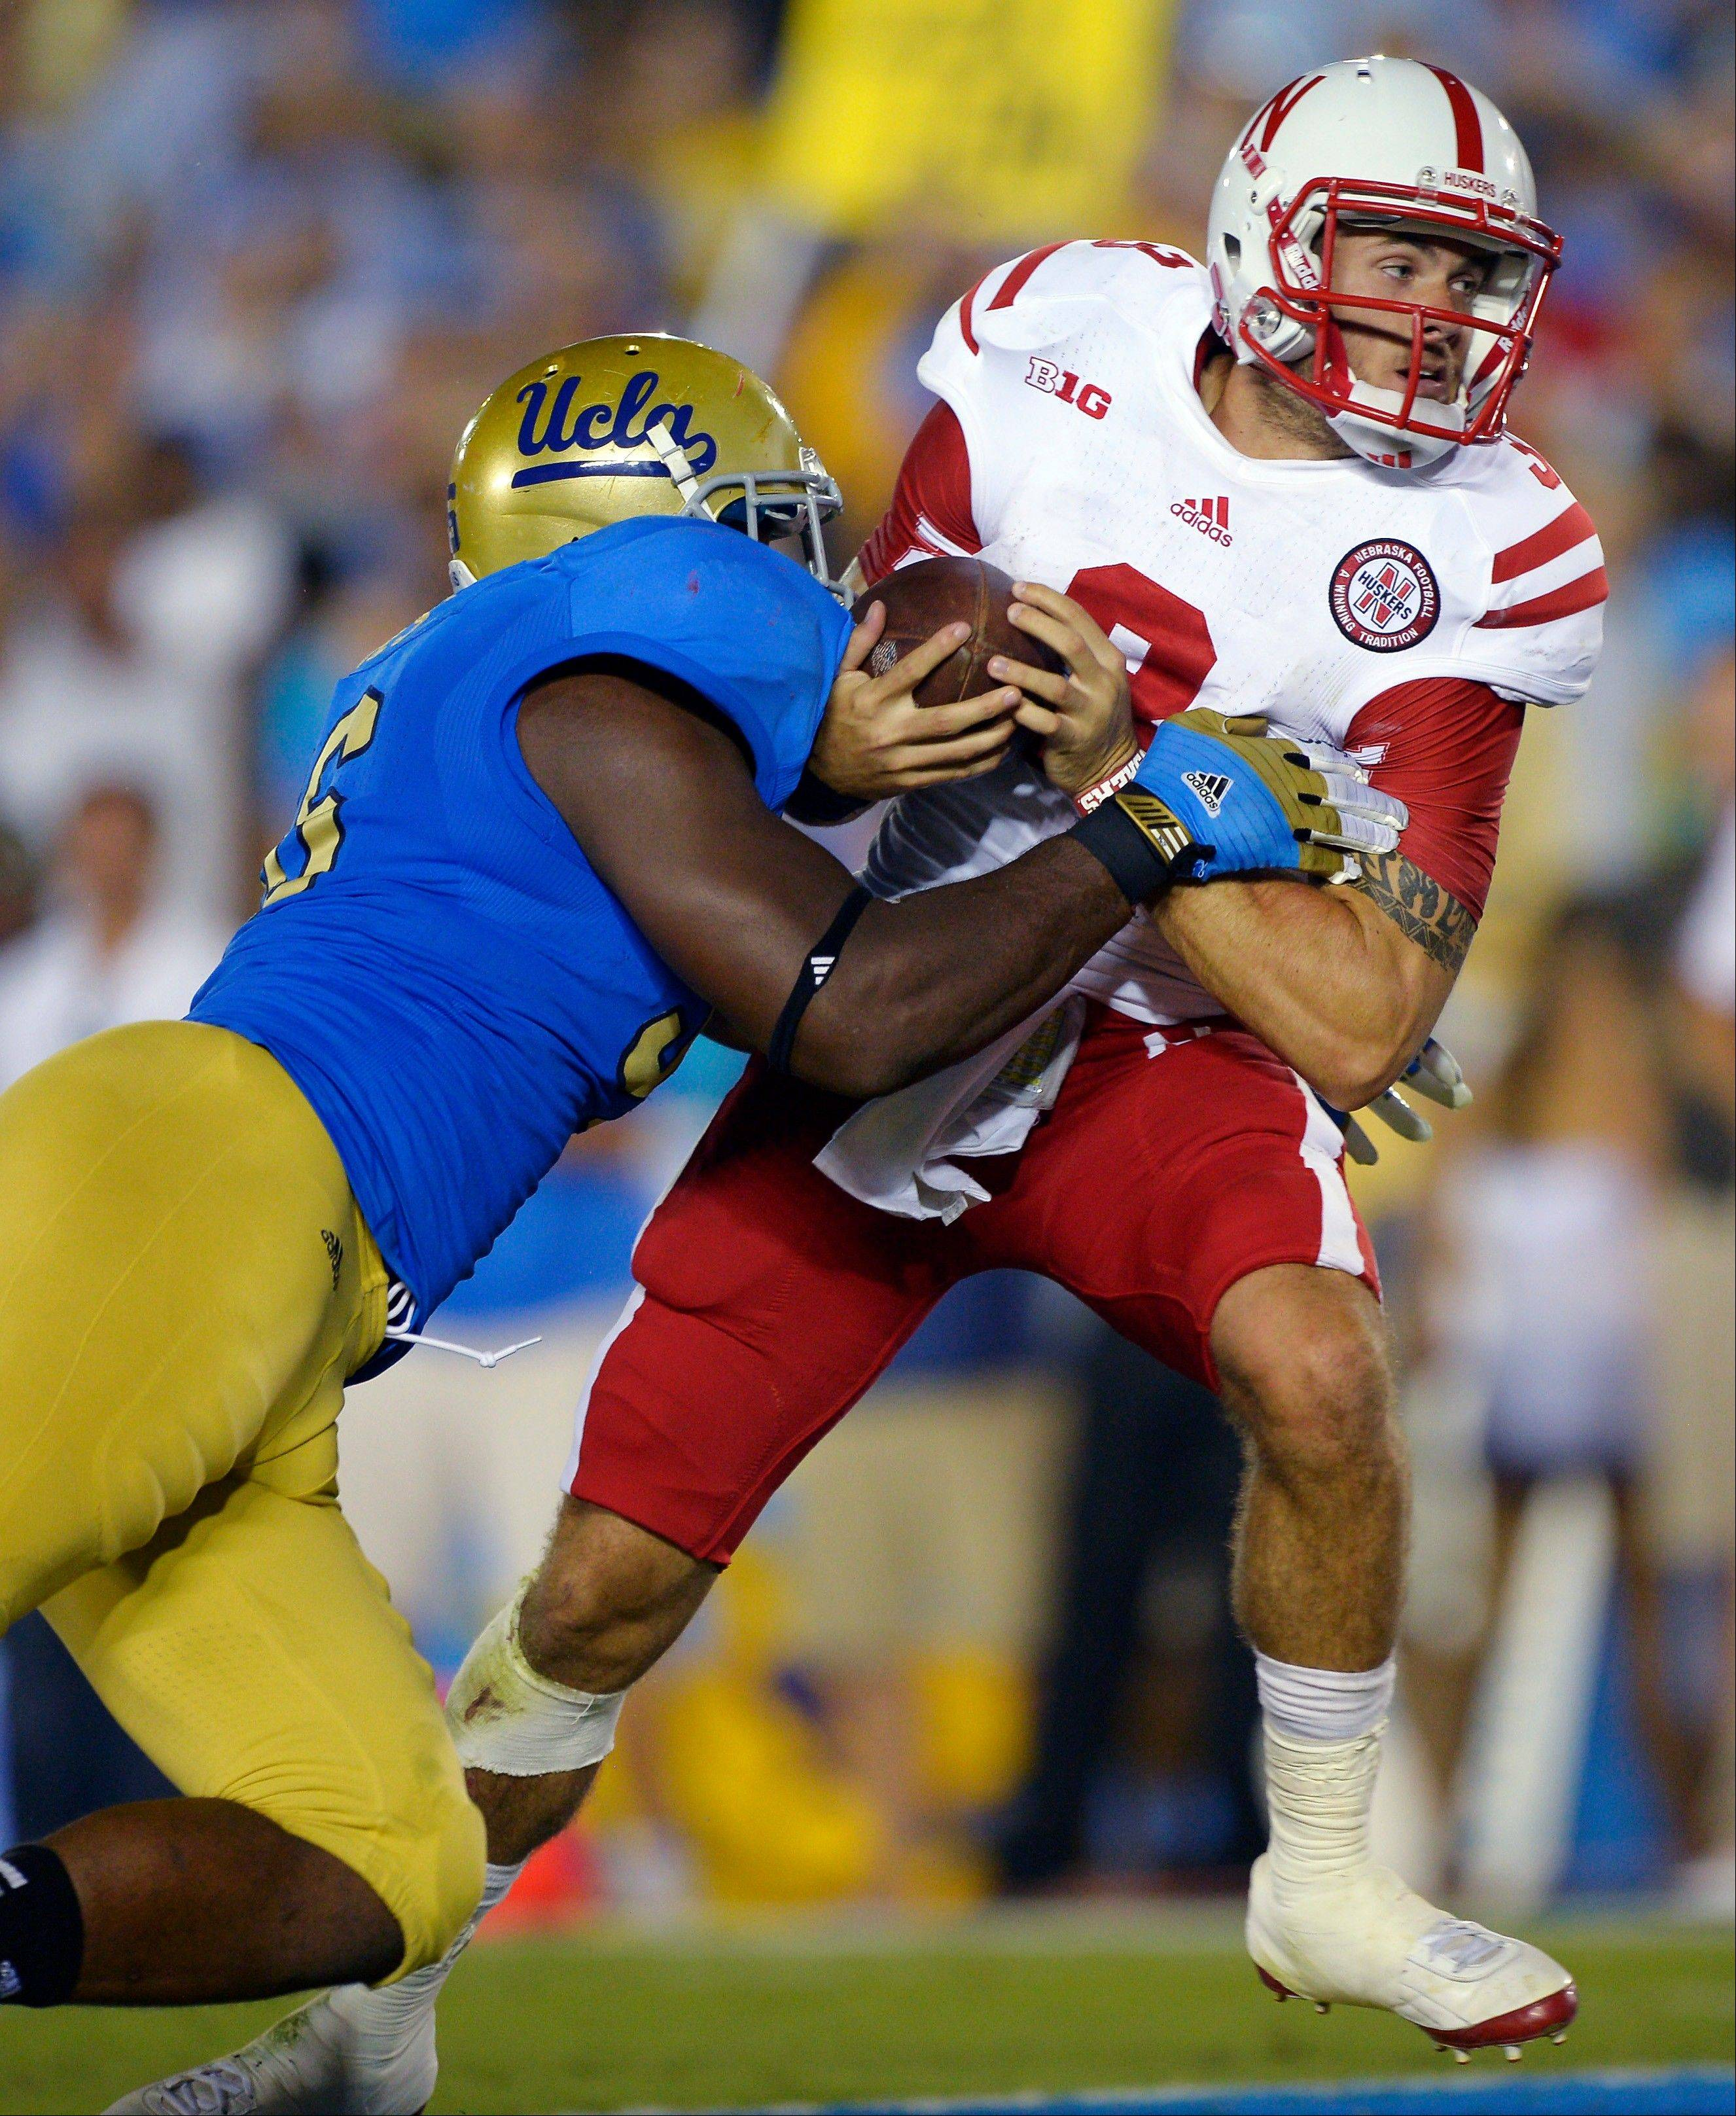 UCLA defensive end Datone Jones sacks Nebraska quarterback Taylor Martinez for a safety during last season's game in Pasadena, Calif.